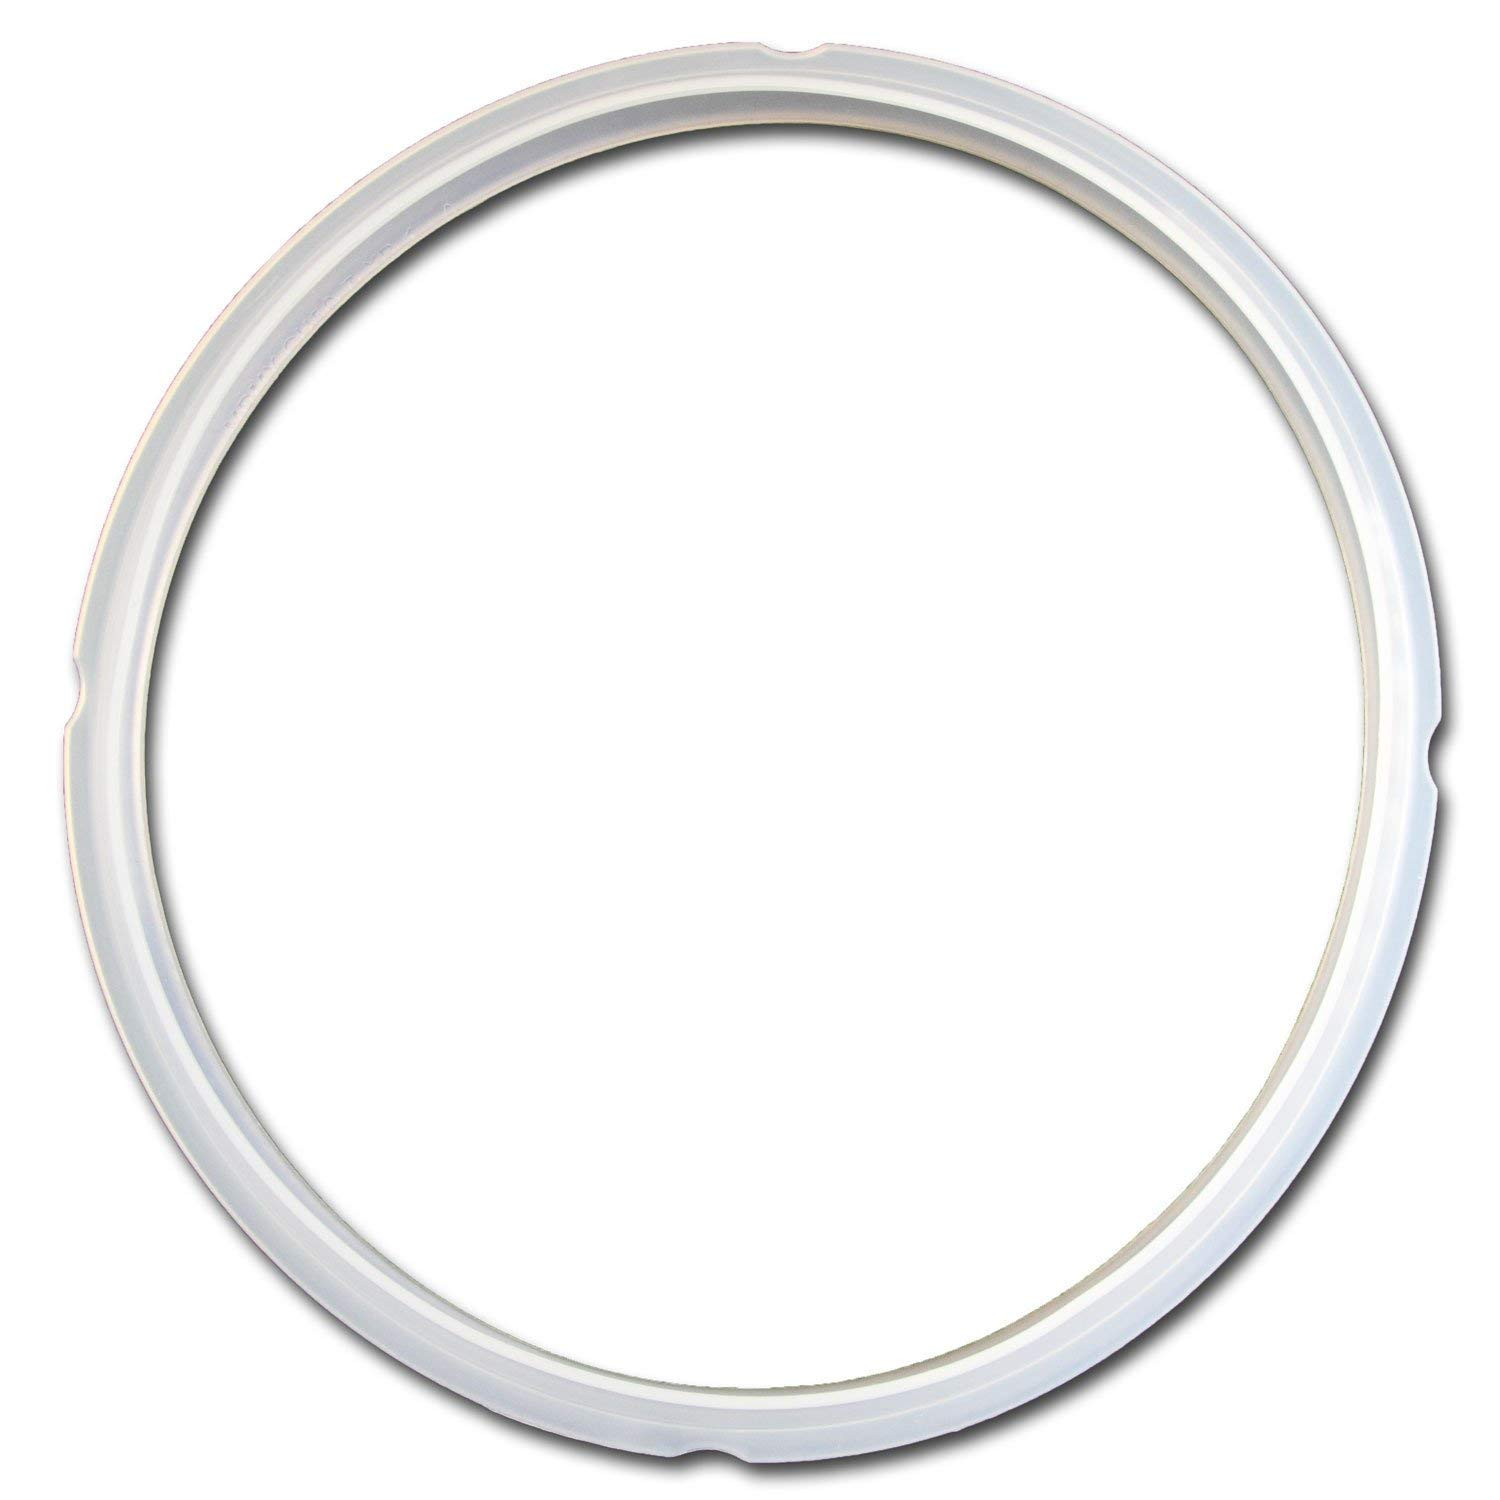 Rubber Seal Ring For Elite Platinum 6 QT Digital Pressure Cooker Model: EPC-686